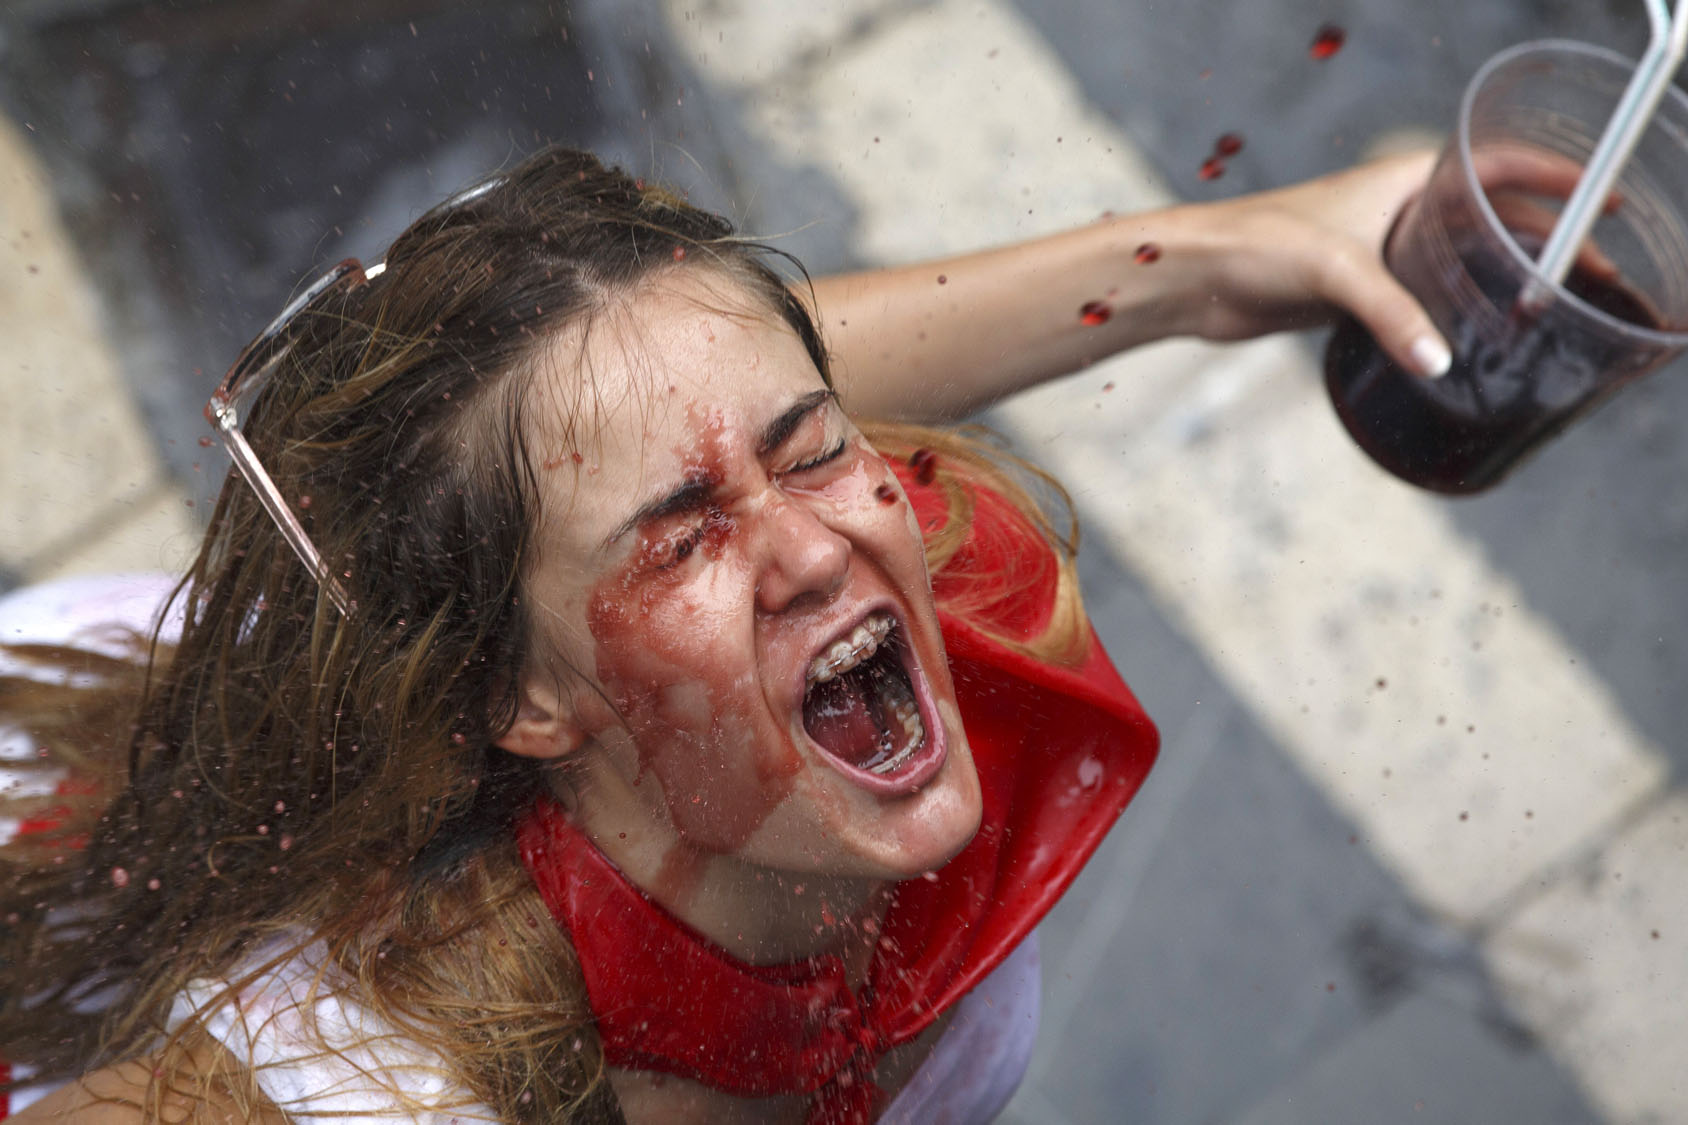 San Fermin 'running of the bulls' festival kicks off in Pamplona, Spain